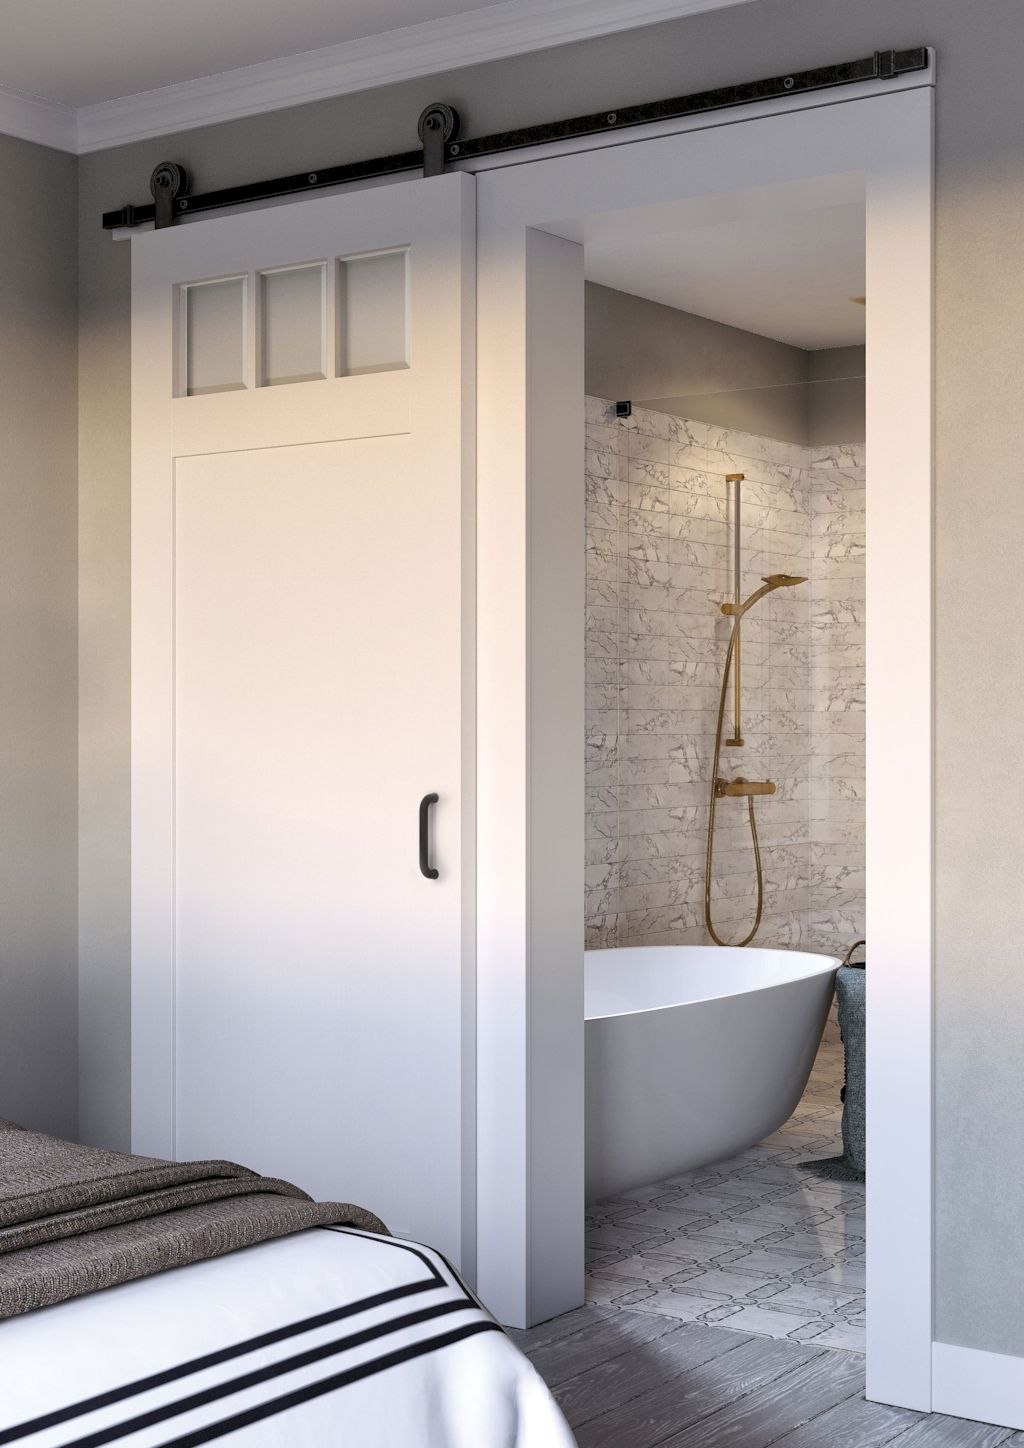 Barn style sliding doors applied as bedroom doors showing a rustic accent in the modern country homes Image 28